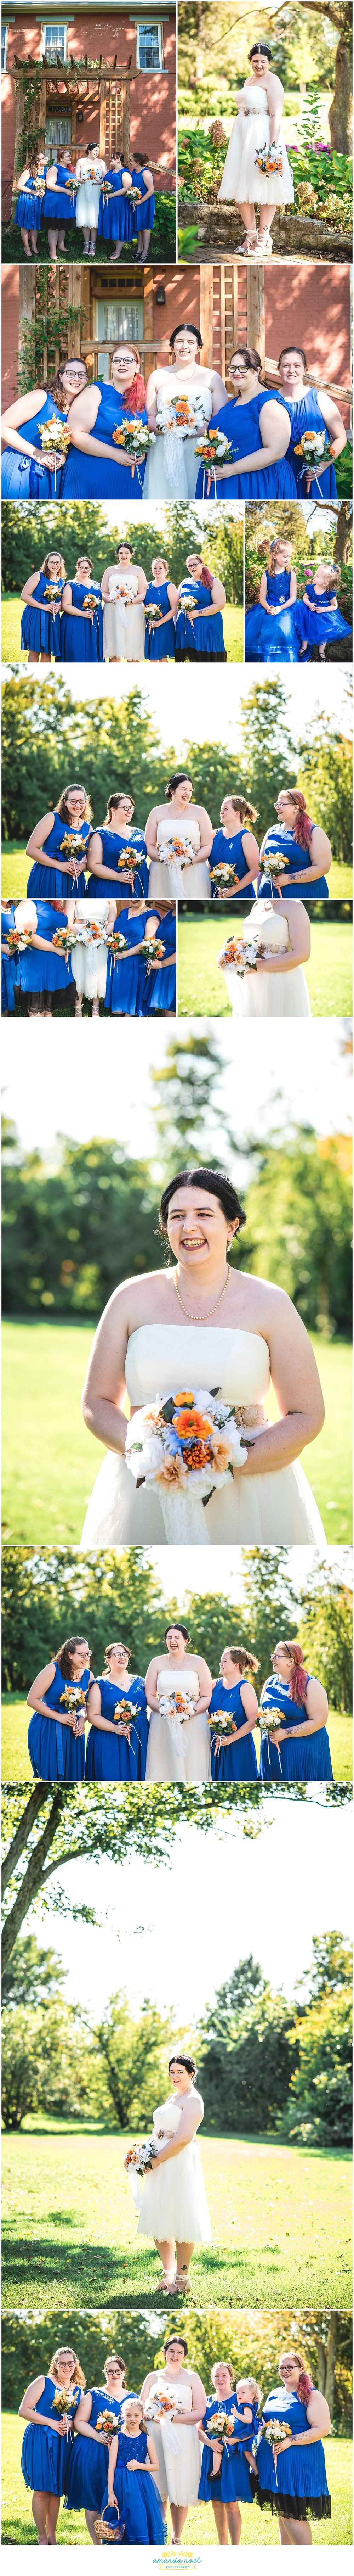 Columbus Ohio Wedding Photographer | Amanda Noel Photography